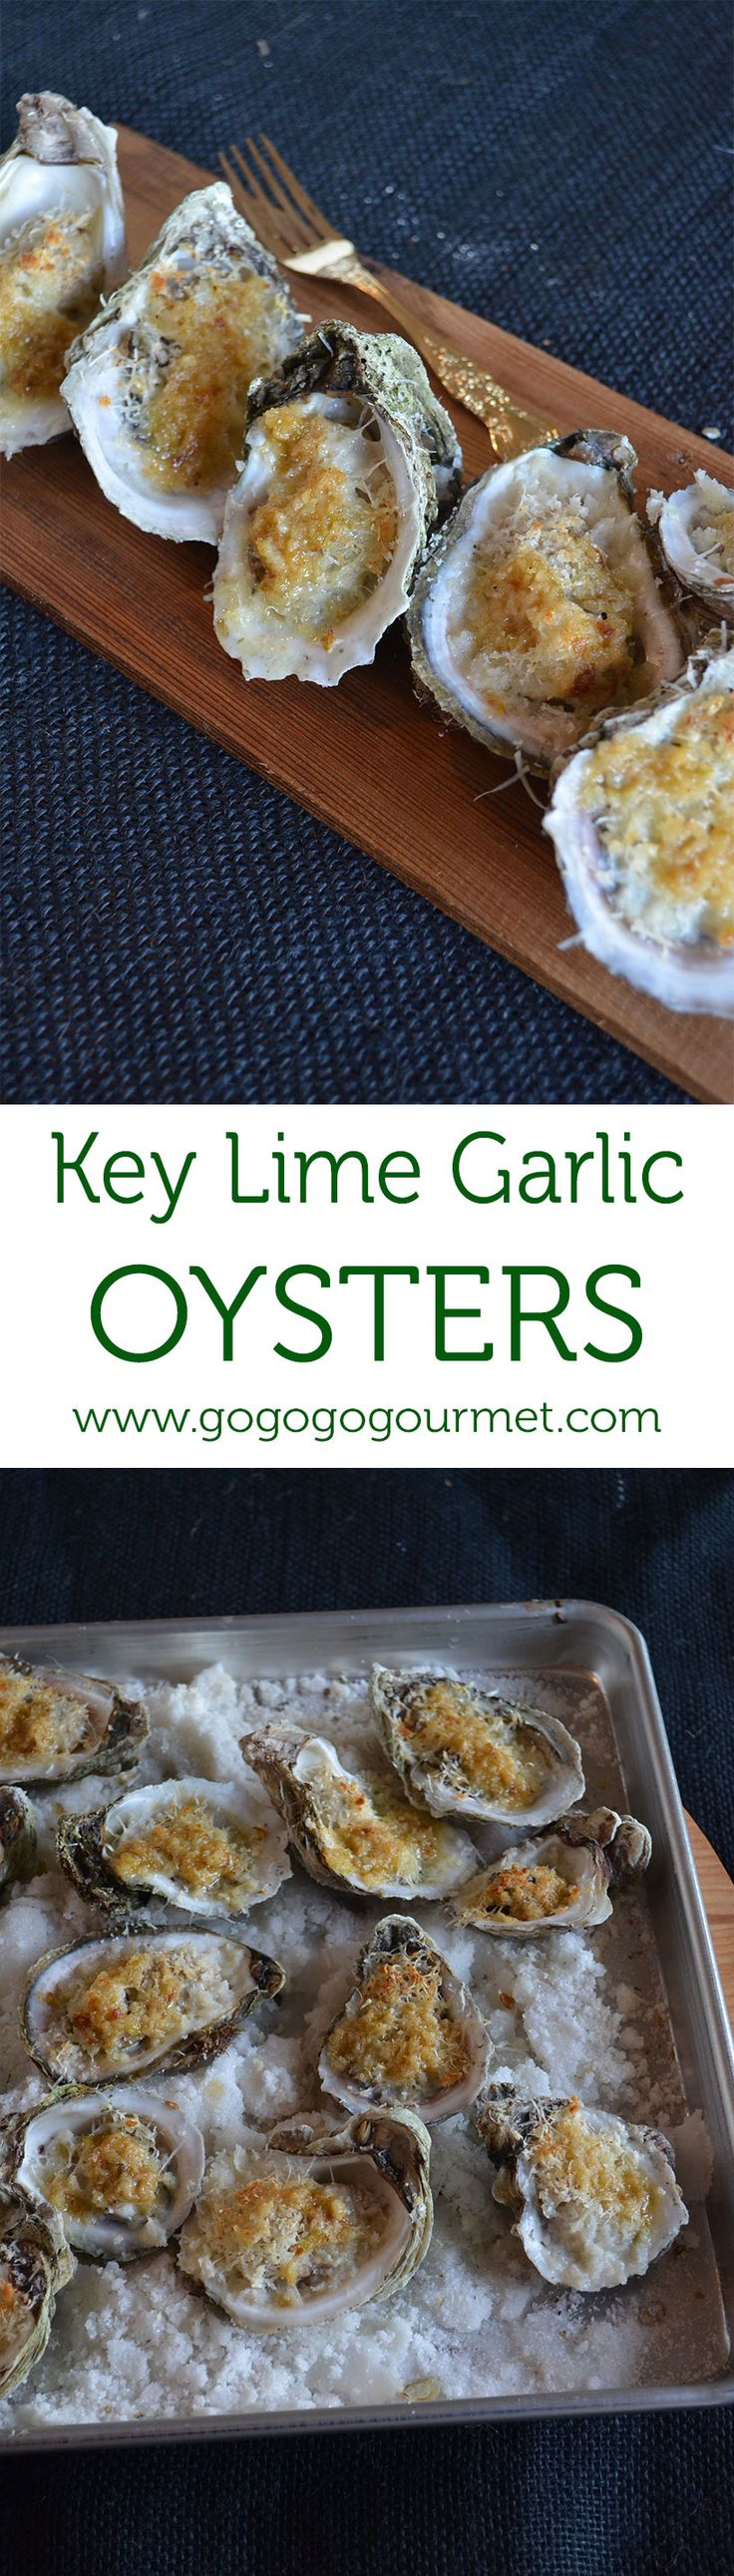 These Key Lime Garlic Oysters are full of citrus flavor, PLUS the baking makes them easier to shuck! | Go Go Go Gourmet @gogogogourmet